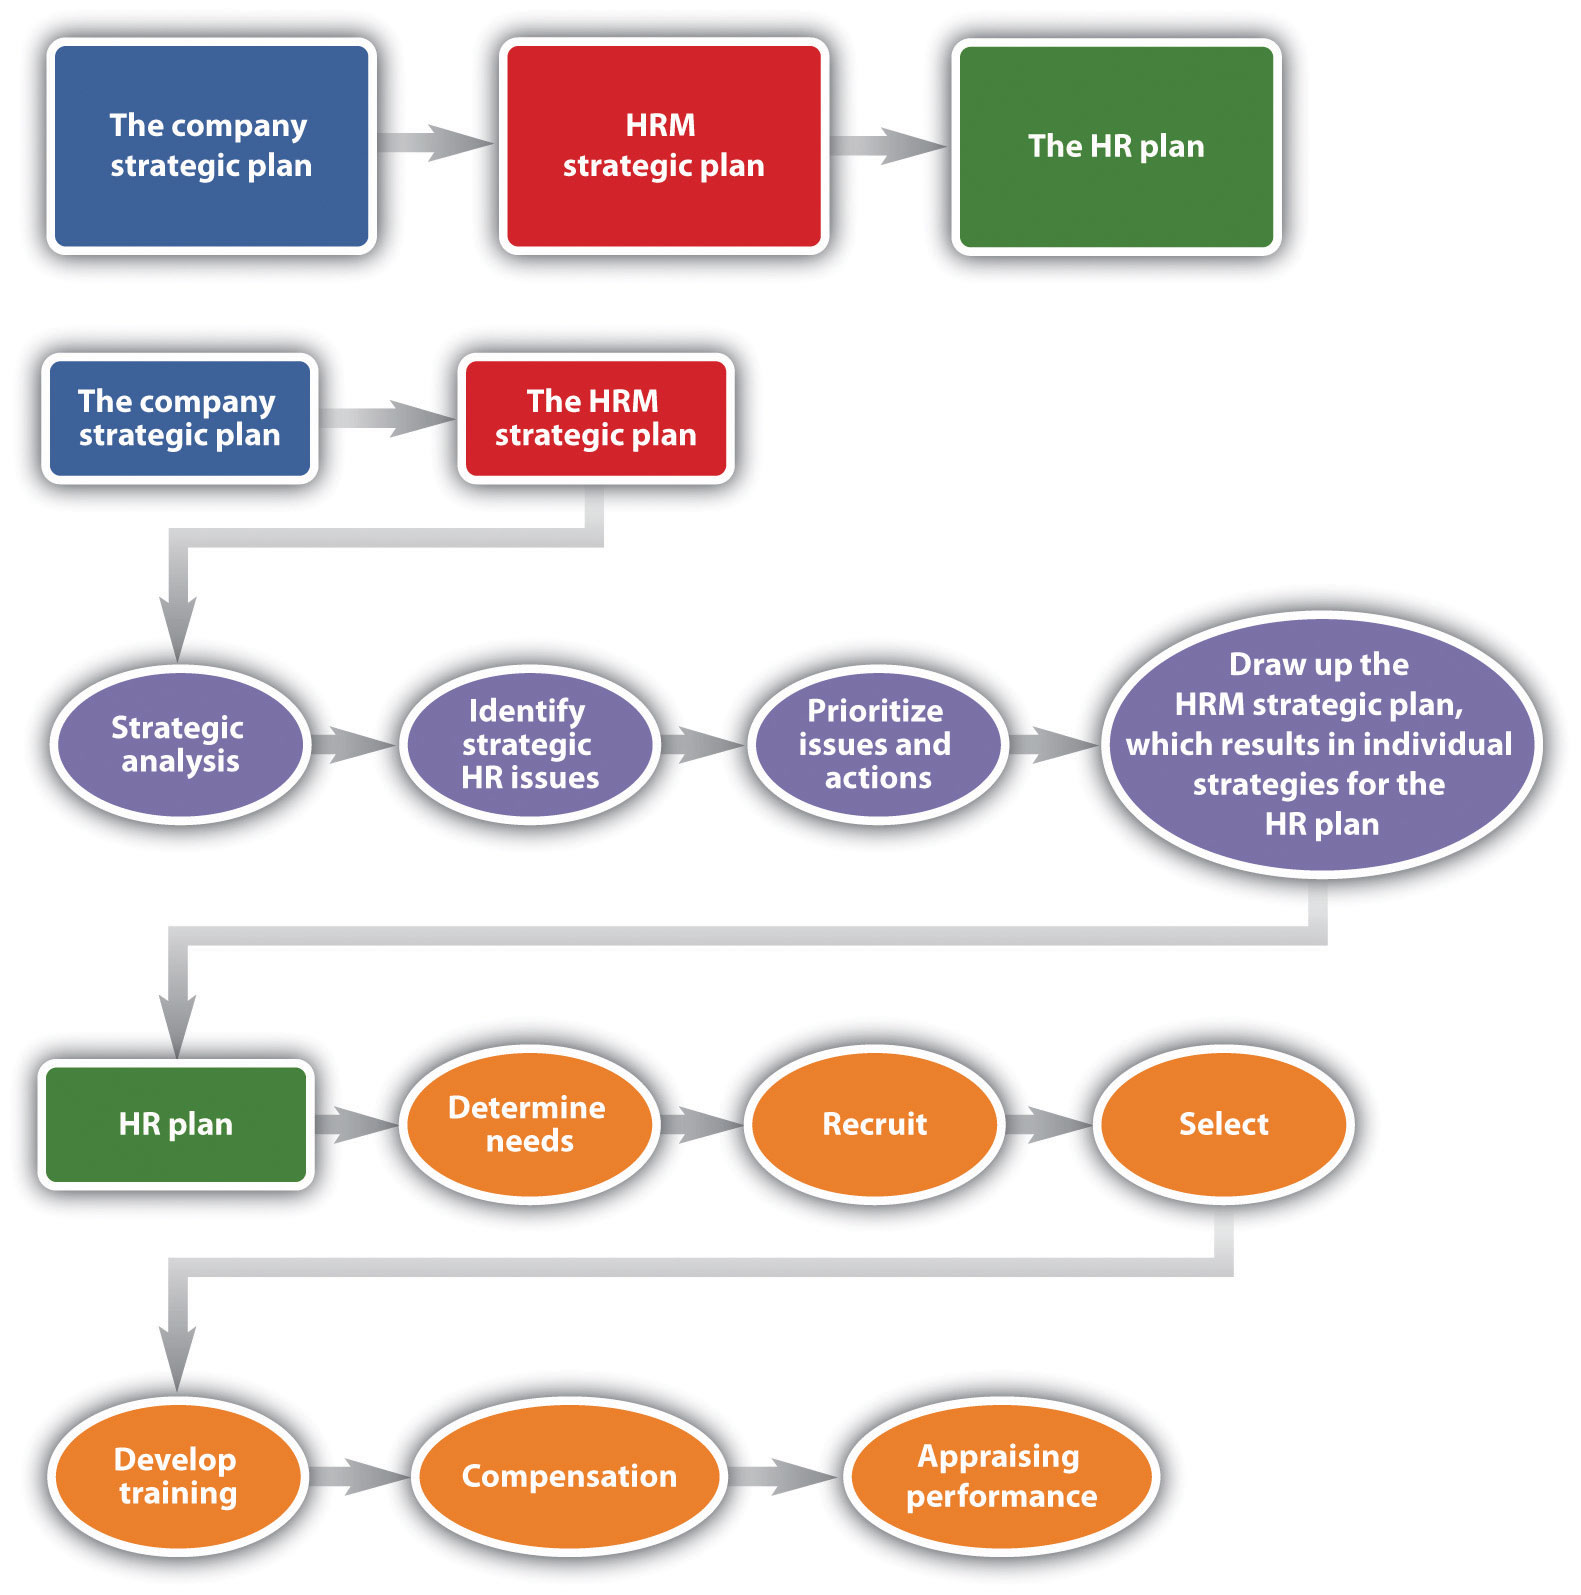 As you can see from this figure, the company strategic plan ties into the HRM strategic plan, and from the HRM strategic plan, the HR plan can be developed